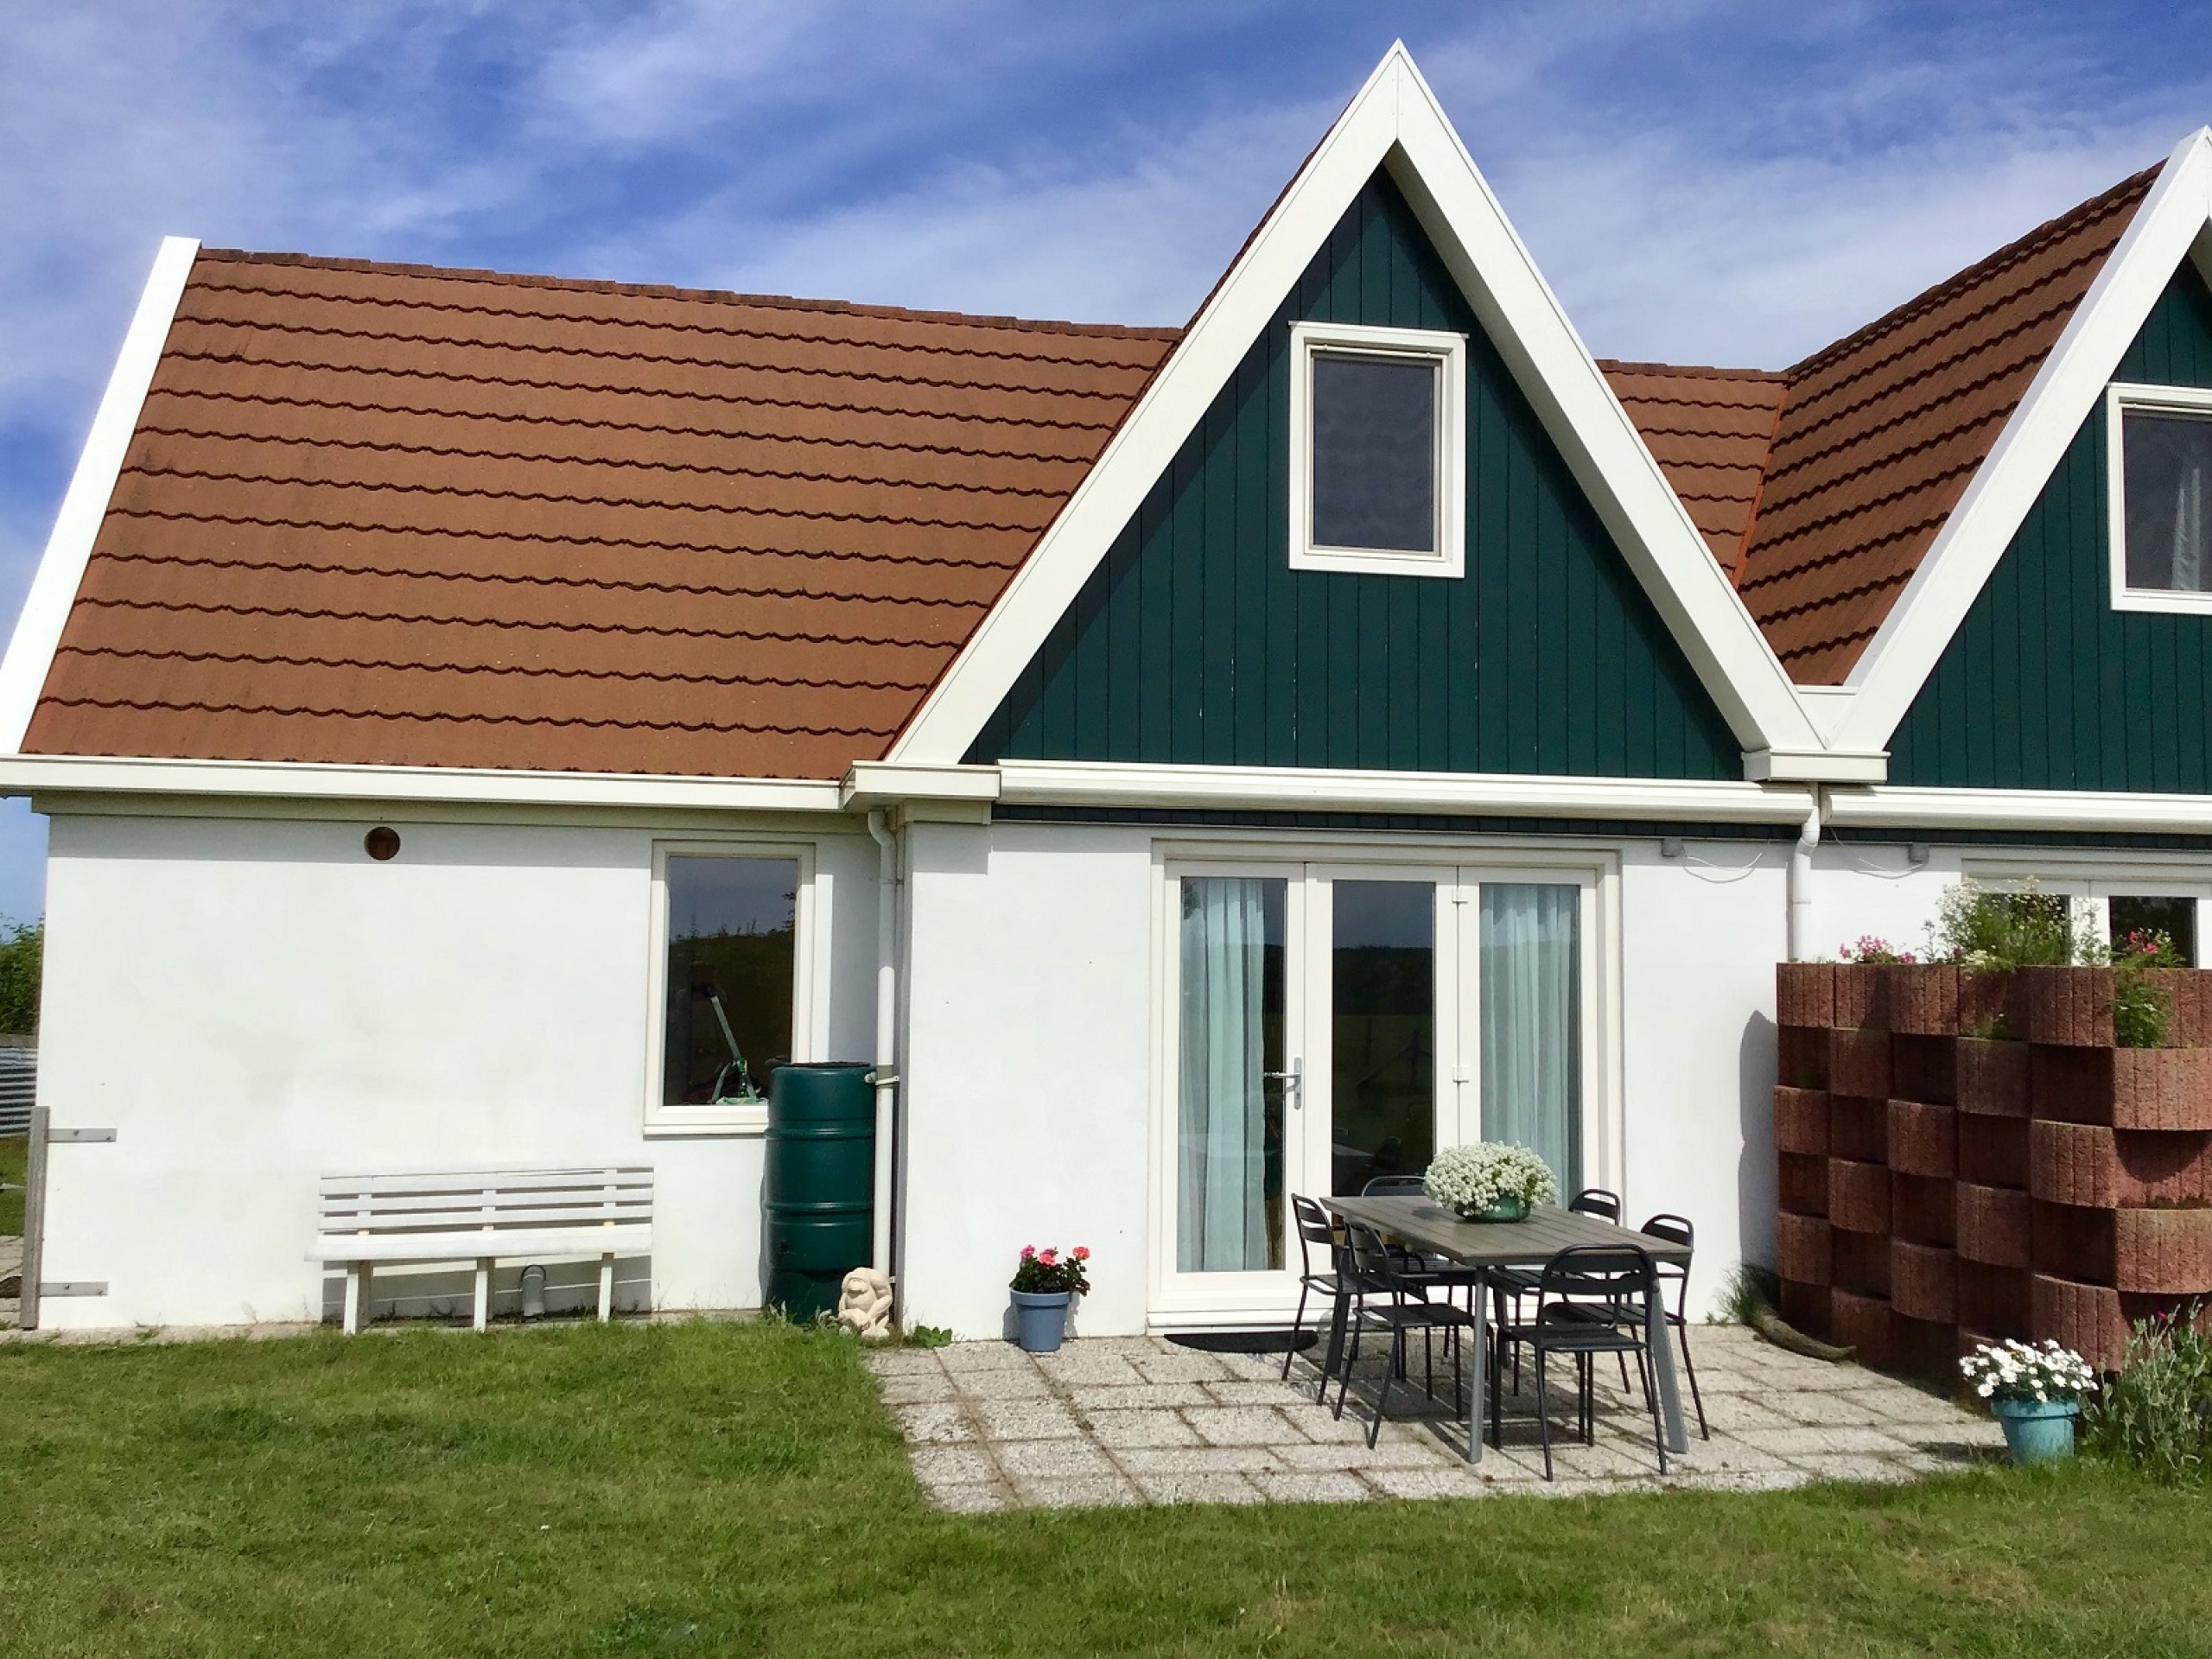 Relax in a beautiful spacious holiday home with extensive garden between Texel meadows and animals